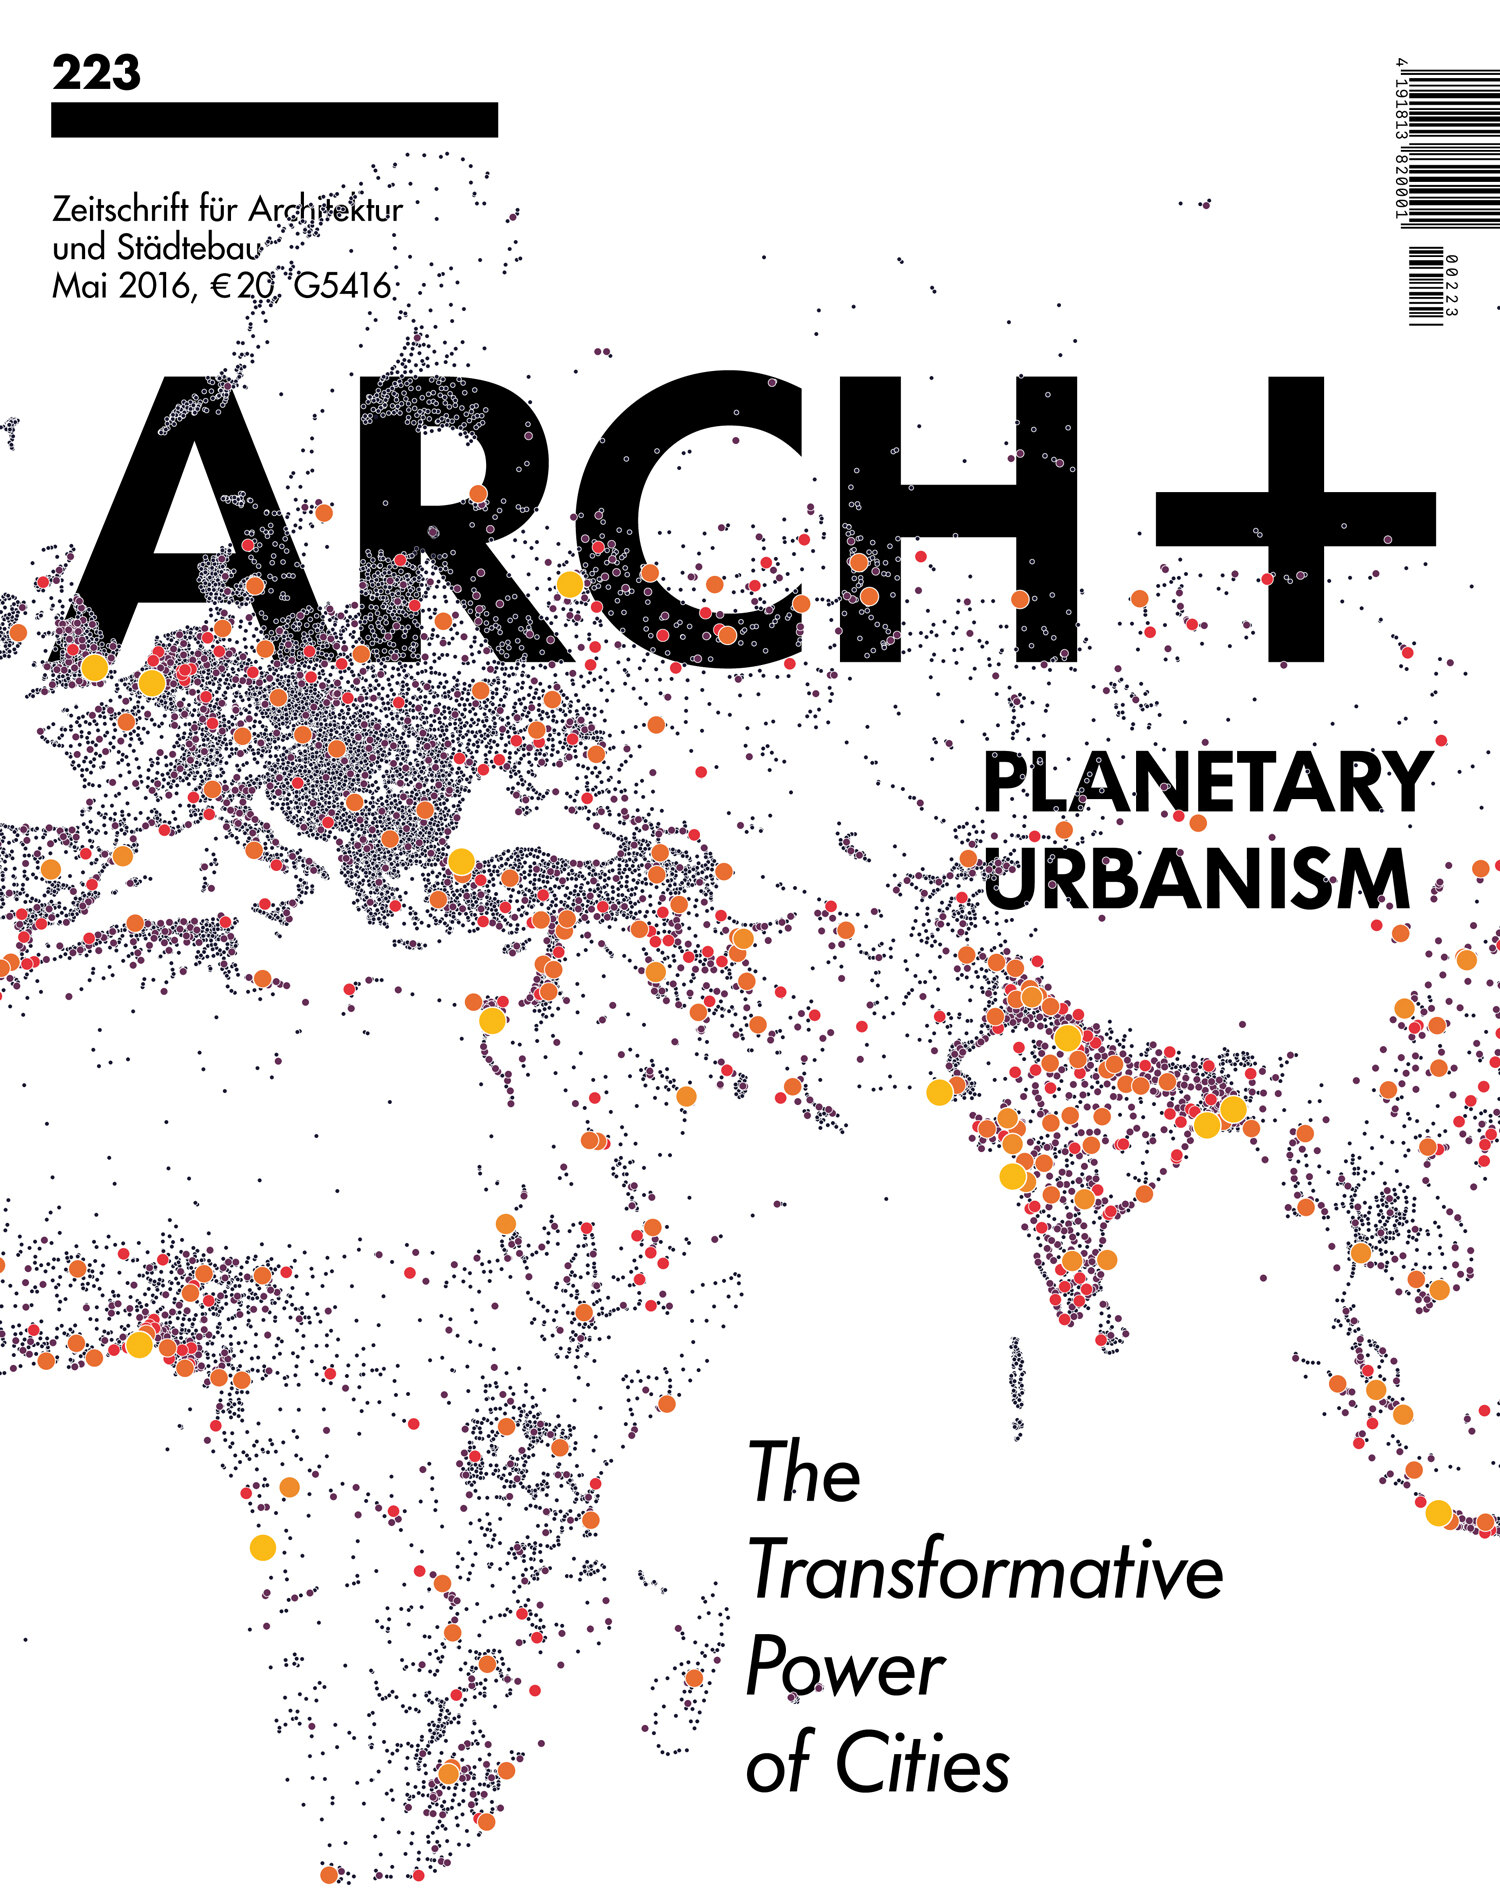 Planetary Urbanism: The Transformative Power of Cities